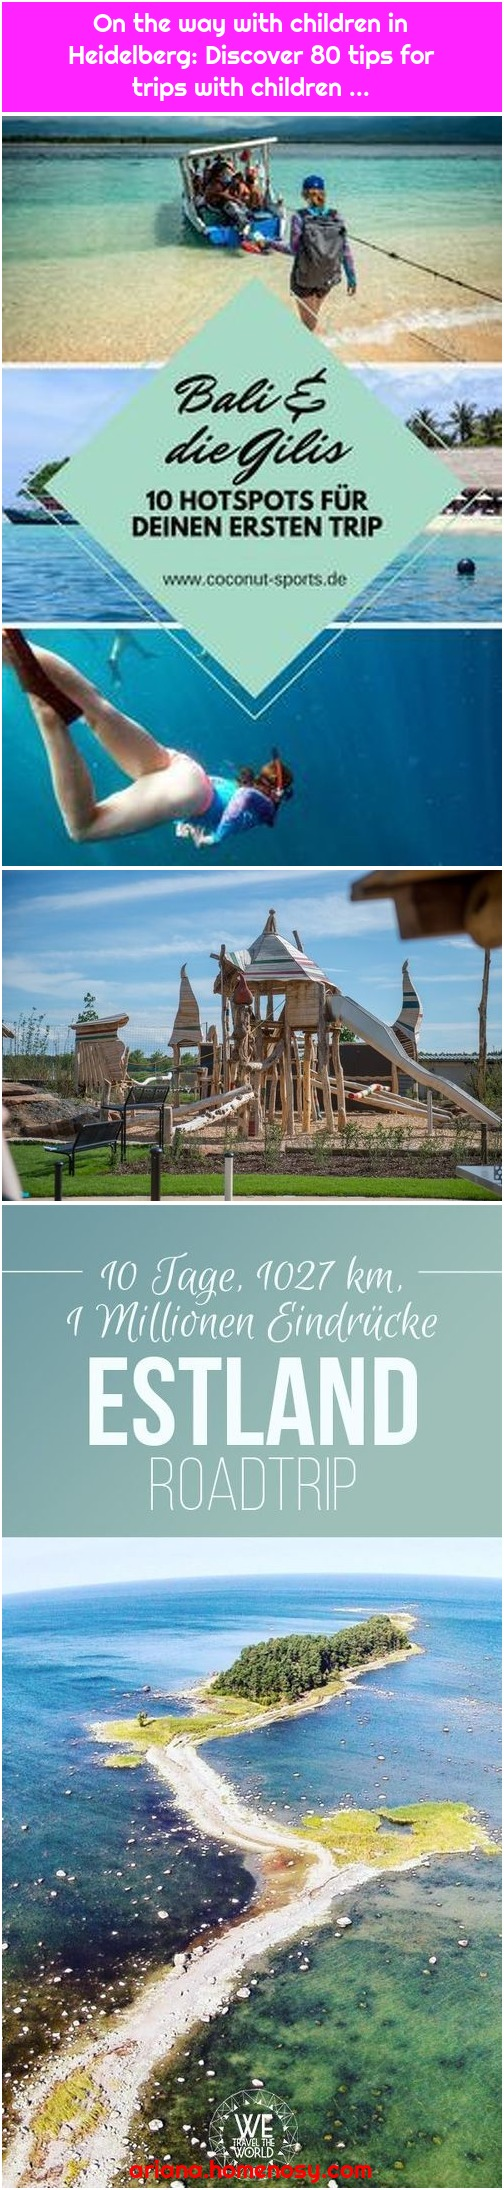 On the way with children in Heidelberg: Discover 80 tips for trips with children ...